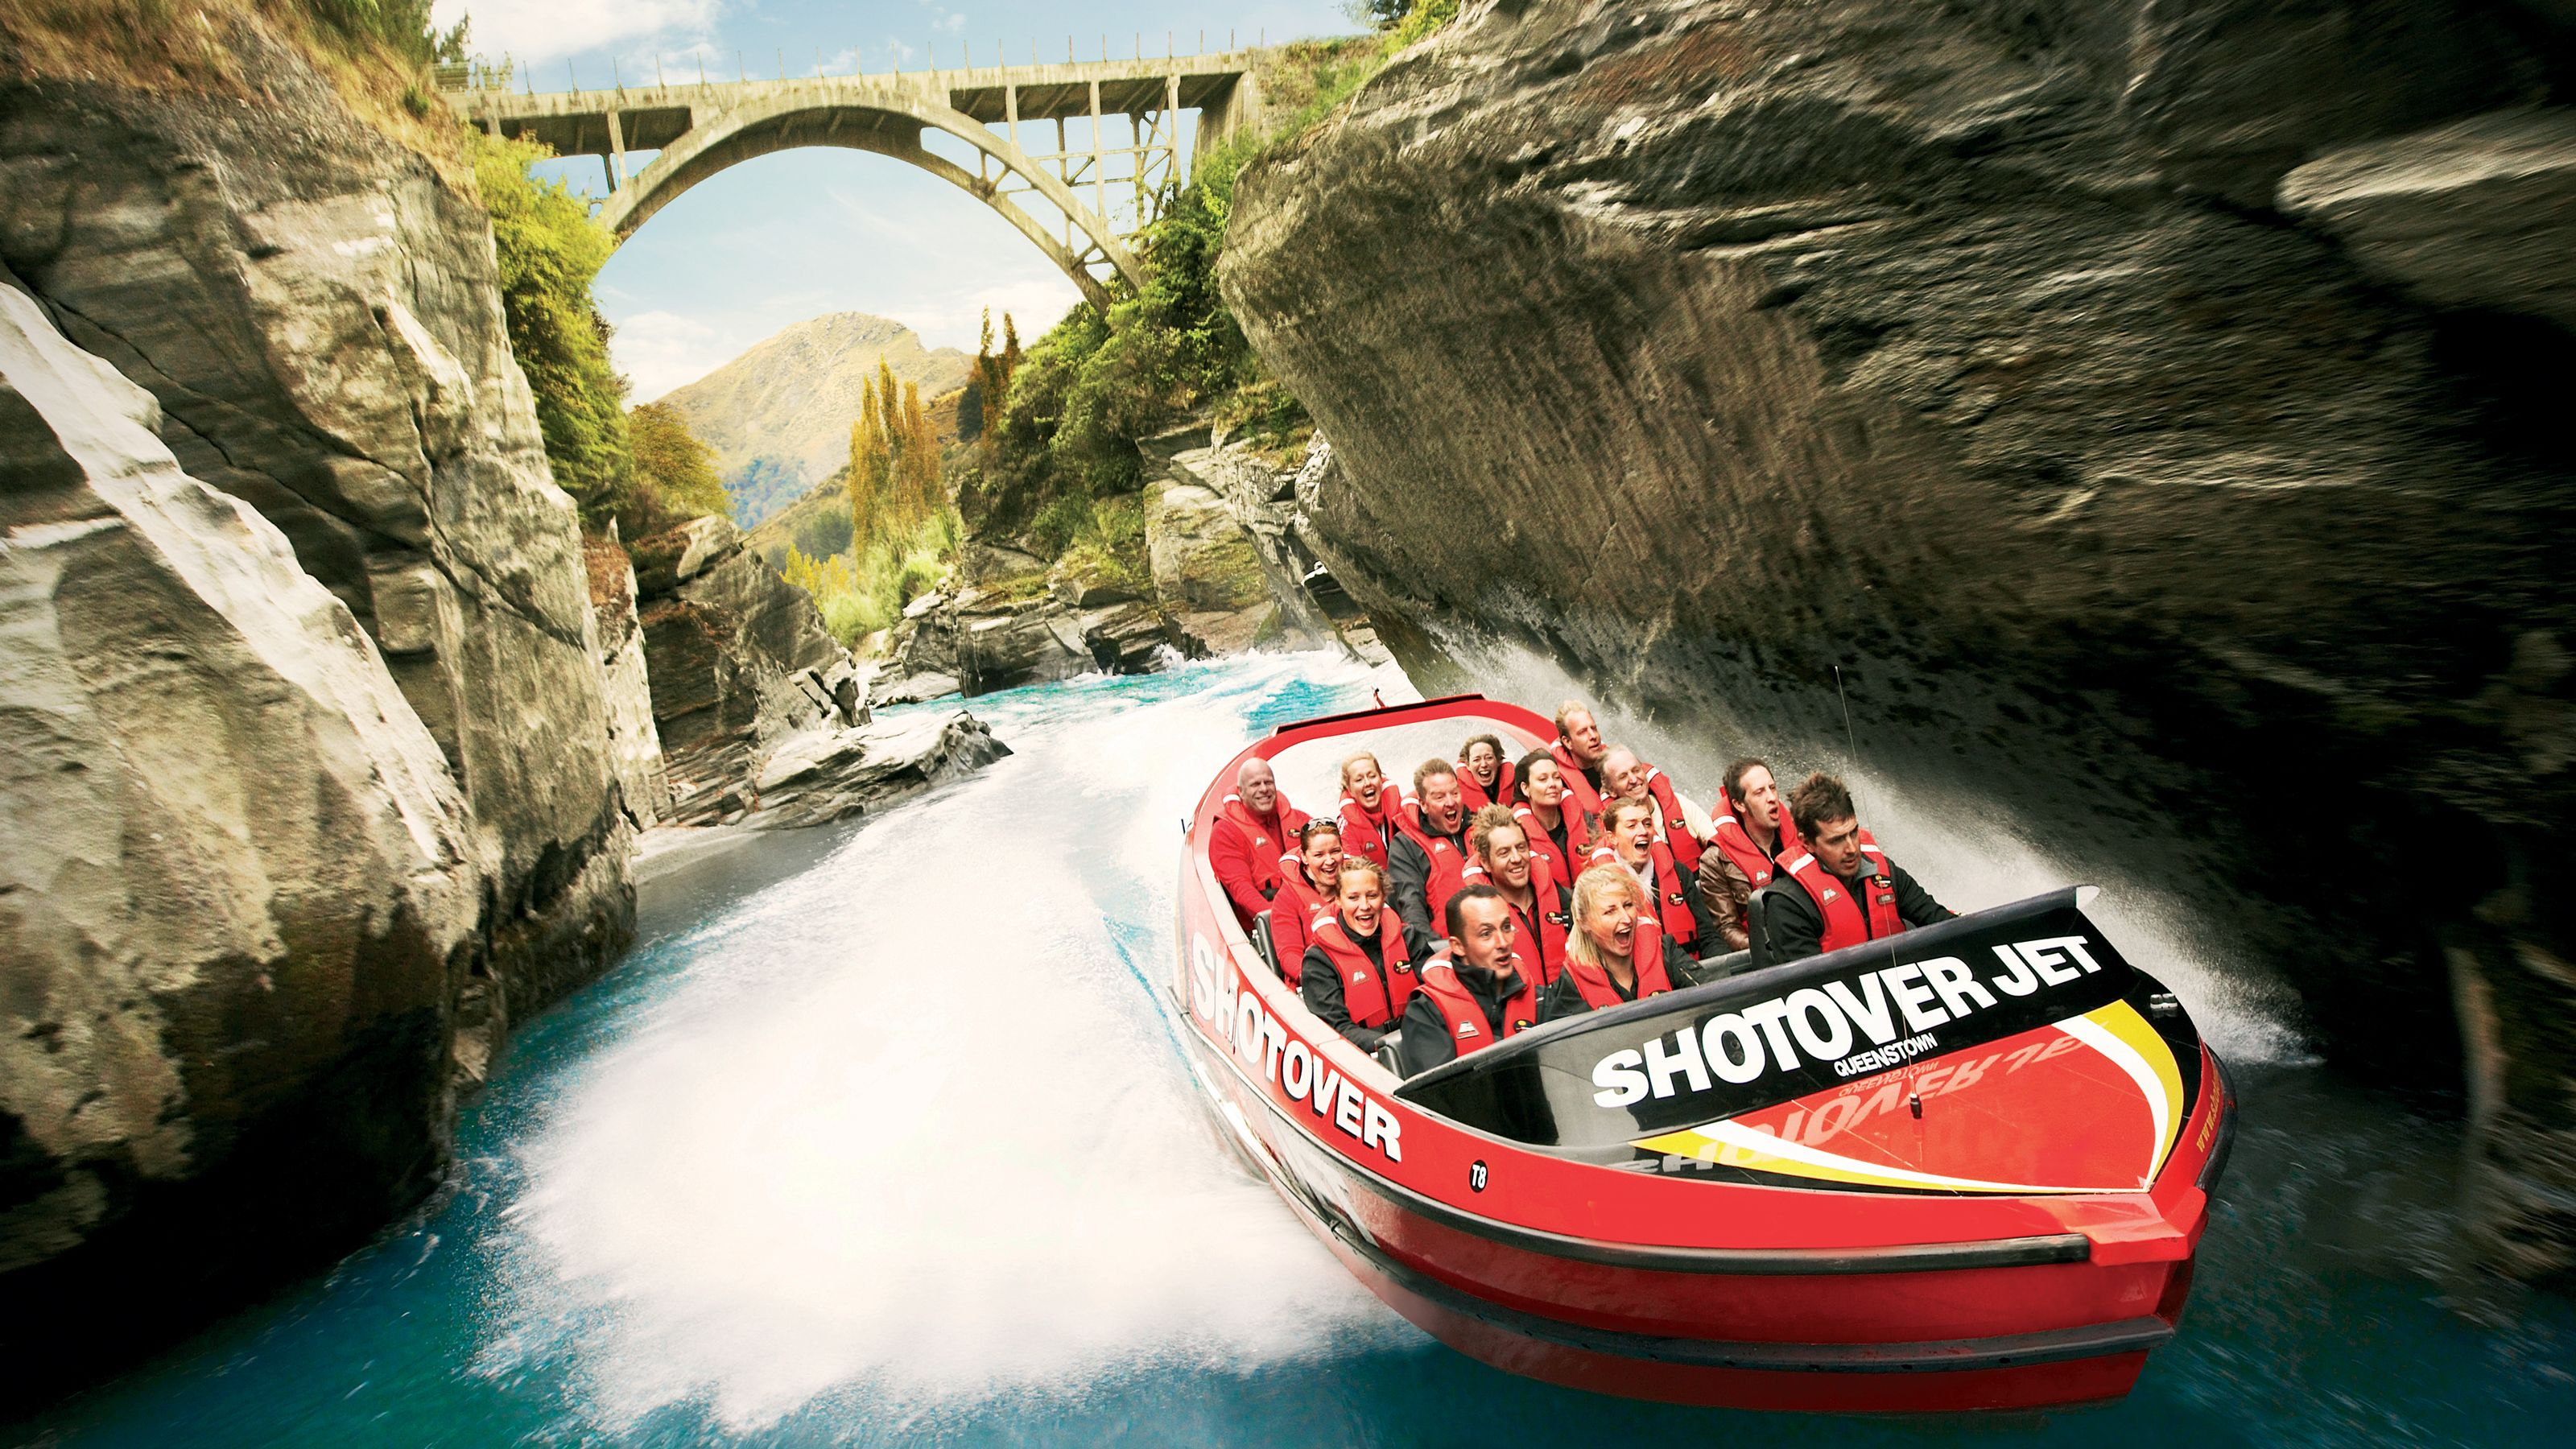 Shotover Canyon Swing, Jet Boat Ride, Helicopter Ride & River Rafting